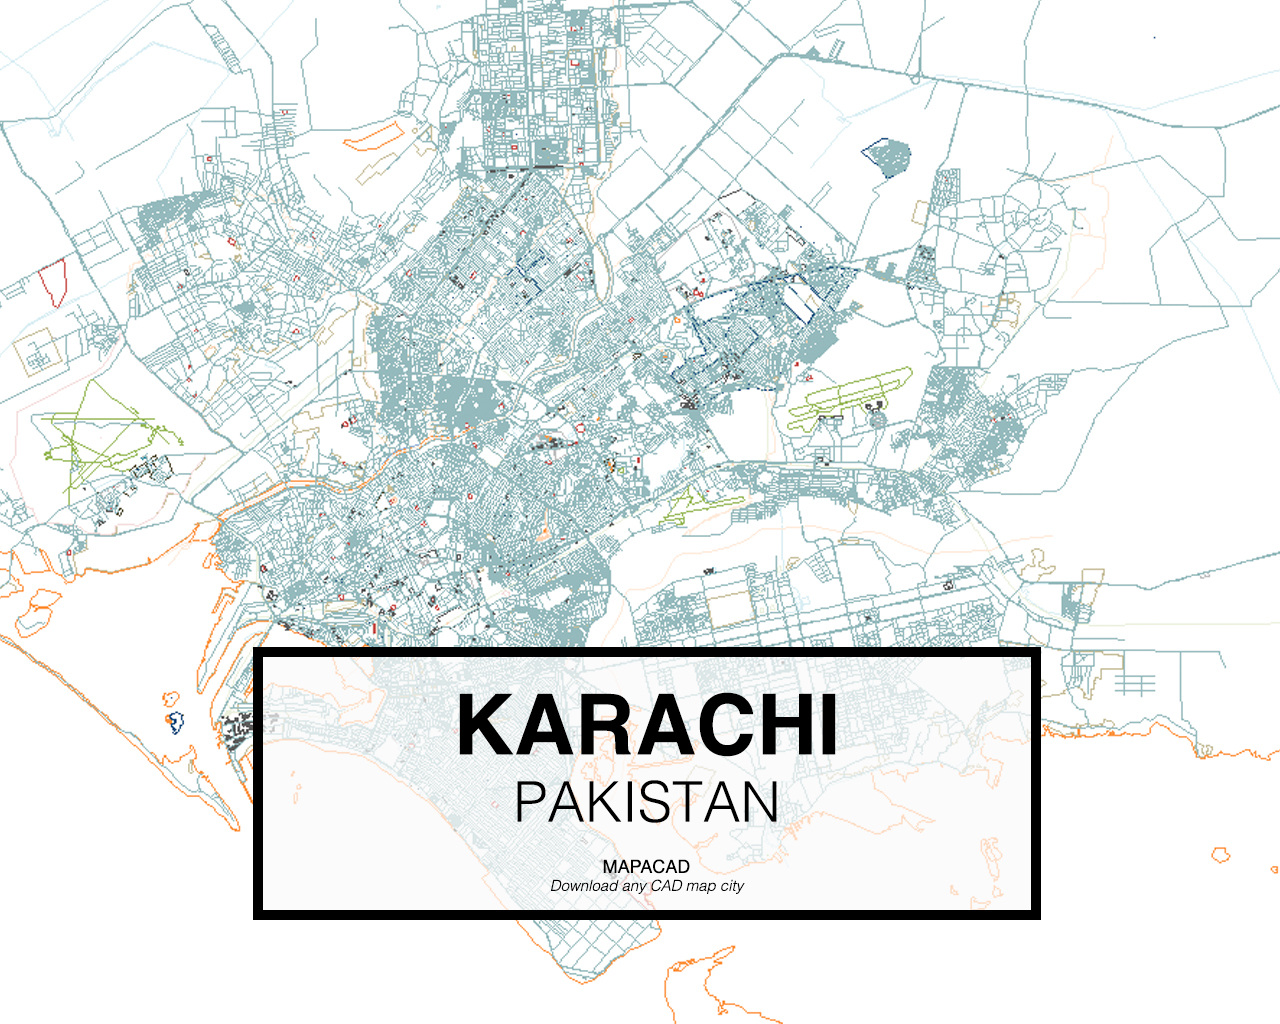 Download karachi dwg mapacad karachi pakistan 01 mapacad download map cad dwg gumiabroncs Gallery